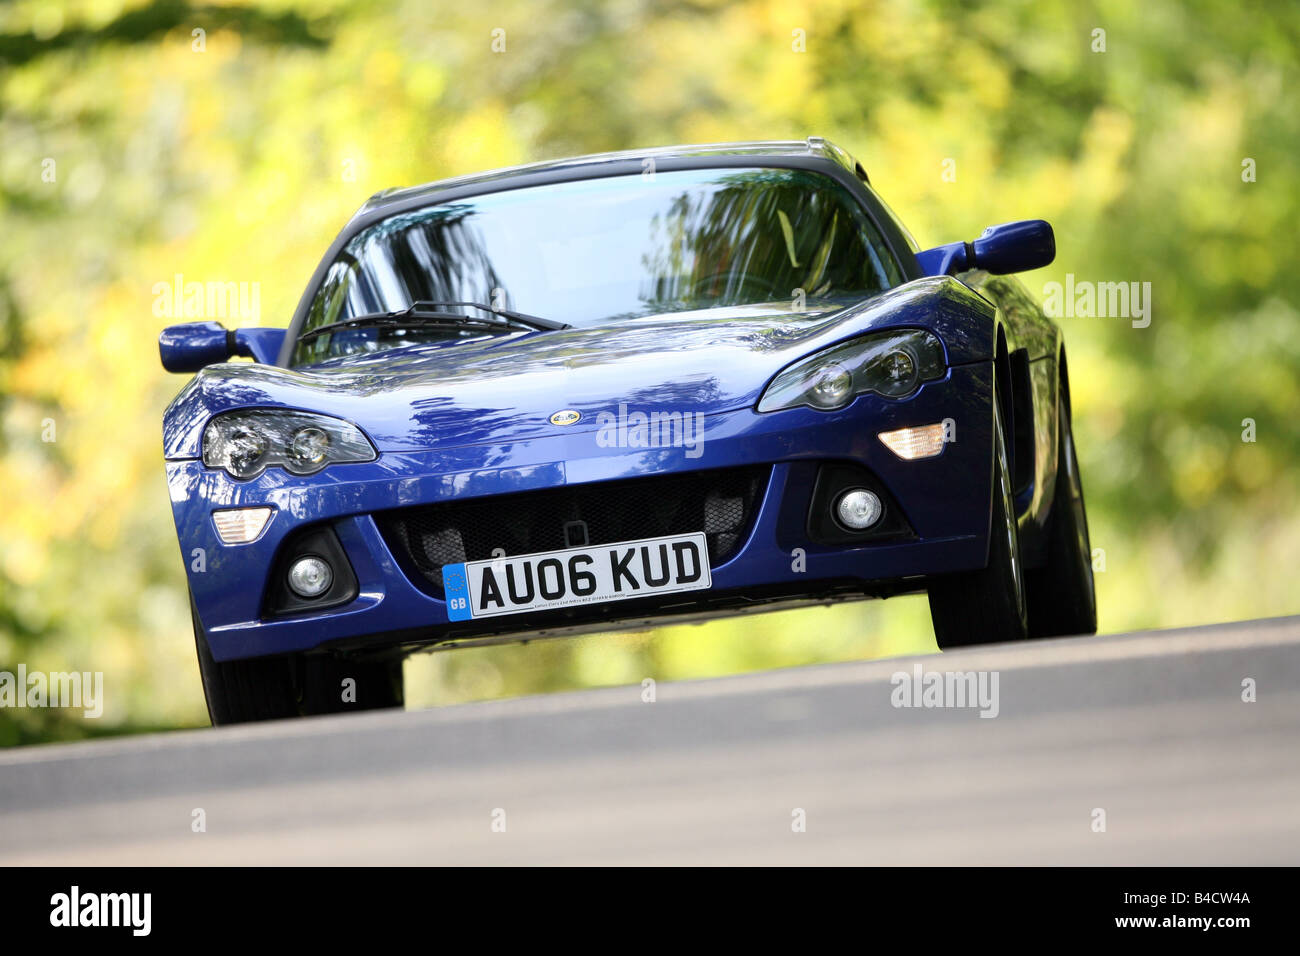 https://c8.alamy.com/comp/B4CW4A/lotus-europa-s-model-year-2006-blue-moving-diagonal-from-the-front-B4CW4A.jpg